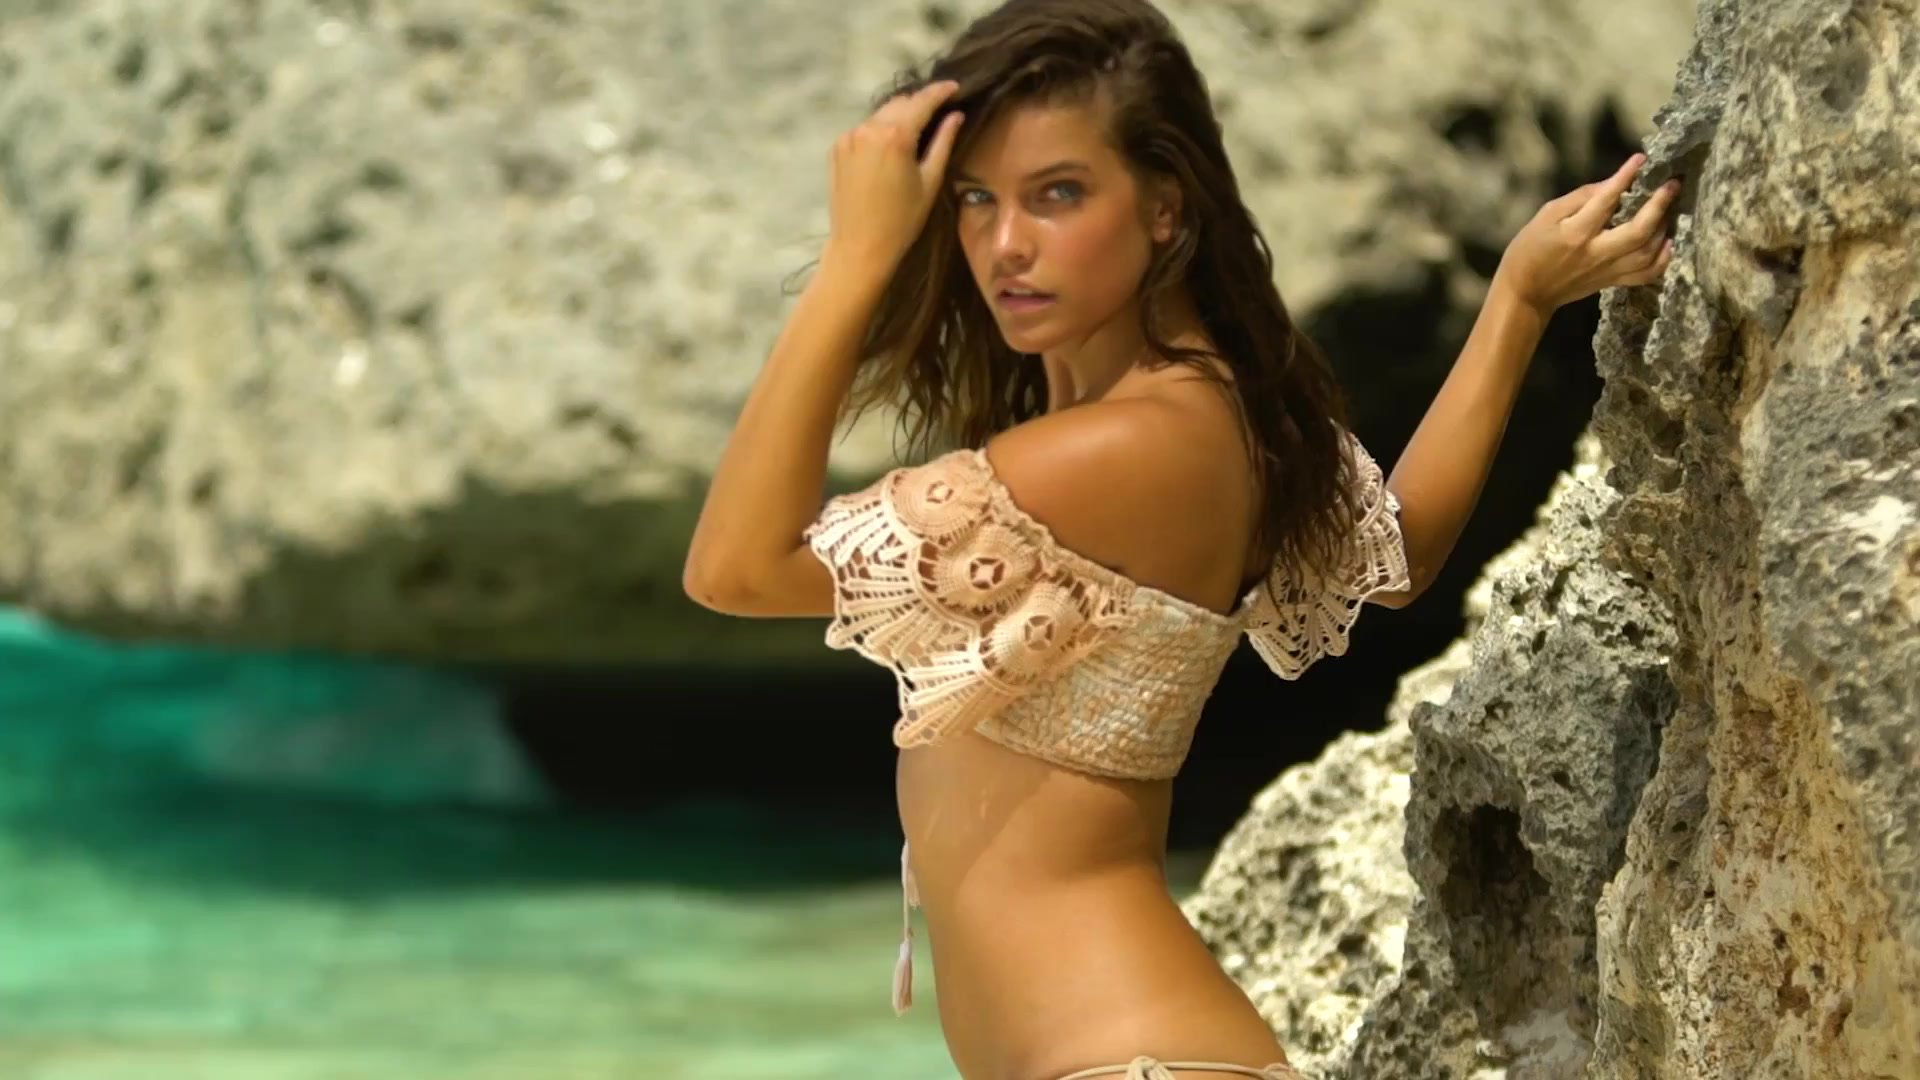 Barbara-Palvin-Photos-Sports-Illustrated-Swimsuit-2017-1